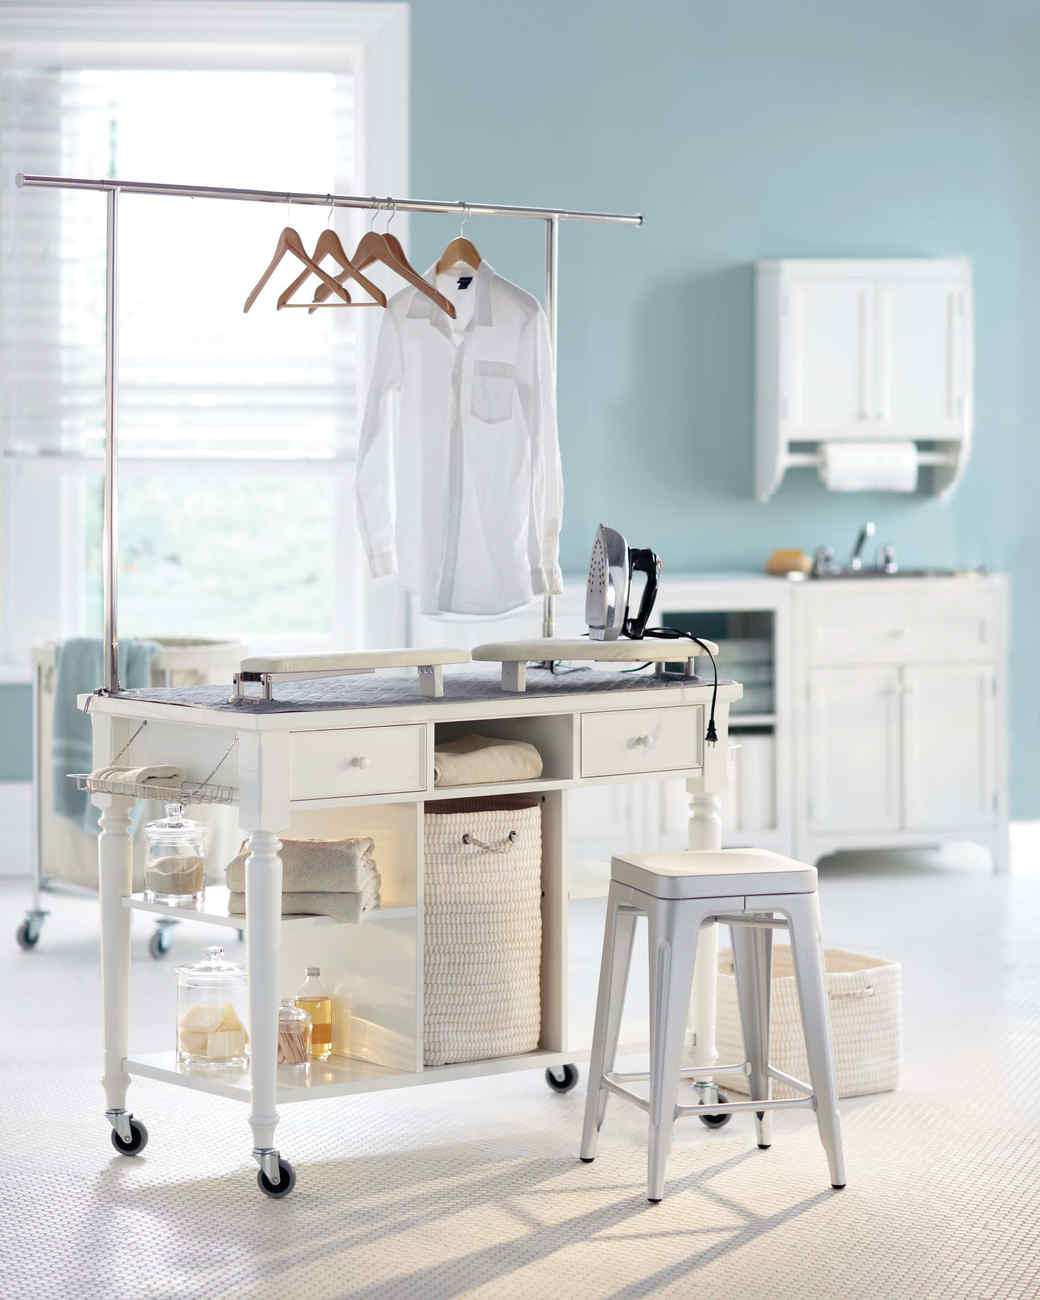 12 Essential LaundryRoom Organizing Ideas Martha Stewart